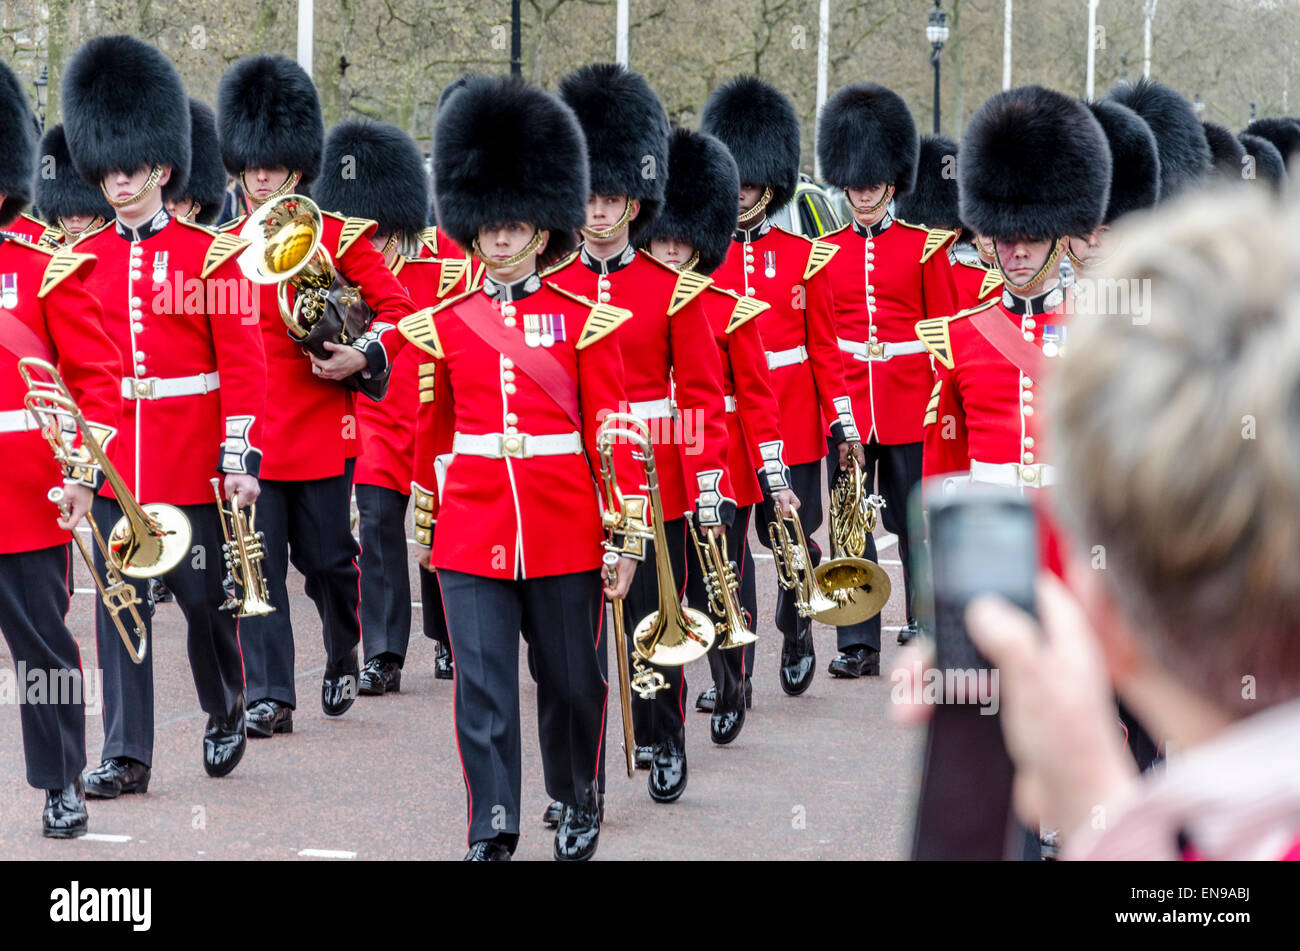 A woman takes a photo with a mobile phone of the Changing of the Queen's Guard, The Mall, London, UK - Stock Image